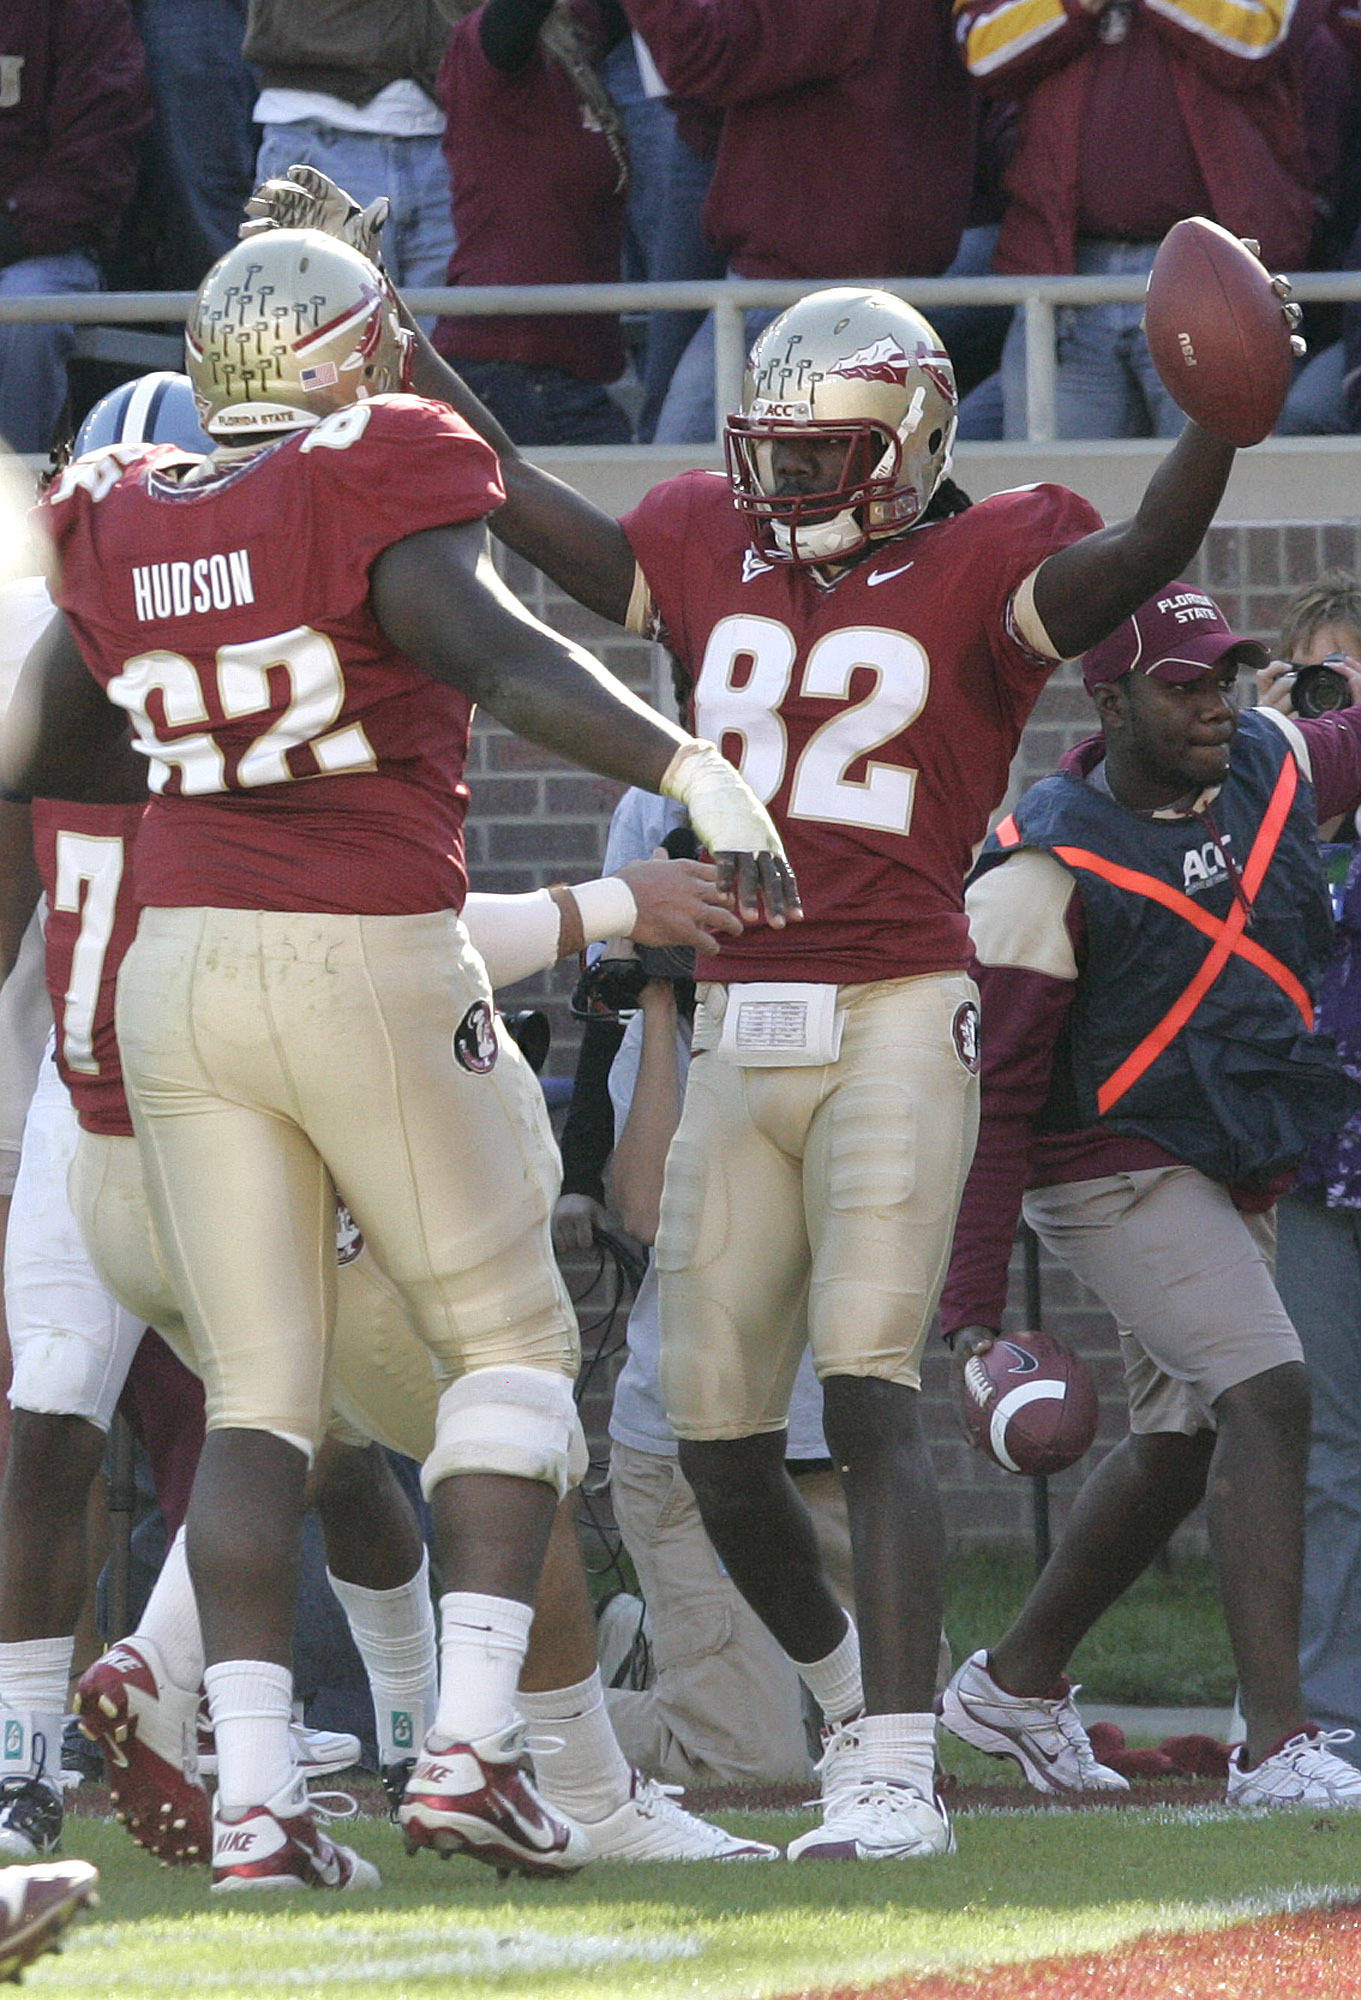 Florida State's Willie Haulstead, right celebrates with teammates after scoring against North Carolina in the first quarter on Saturday. (AP Photo/Steve Cannon)